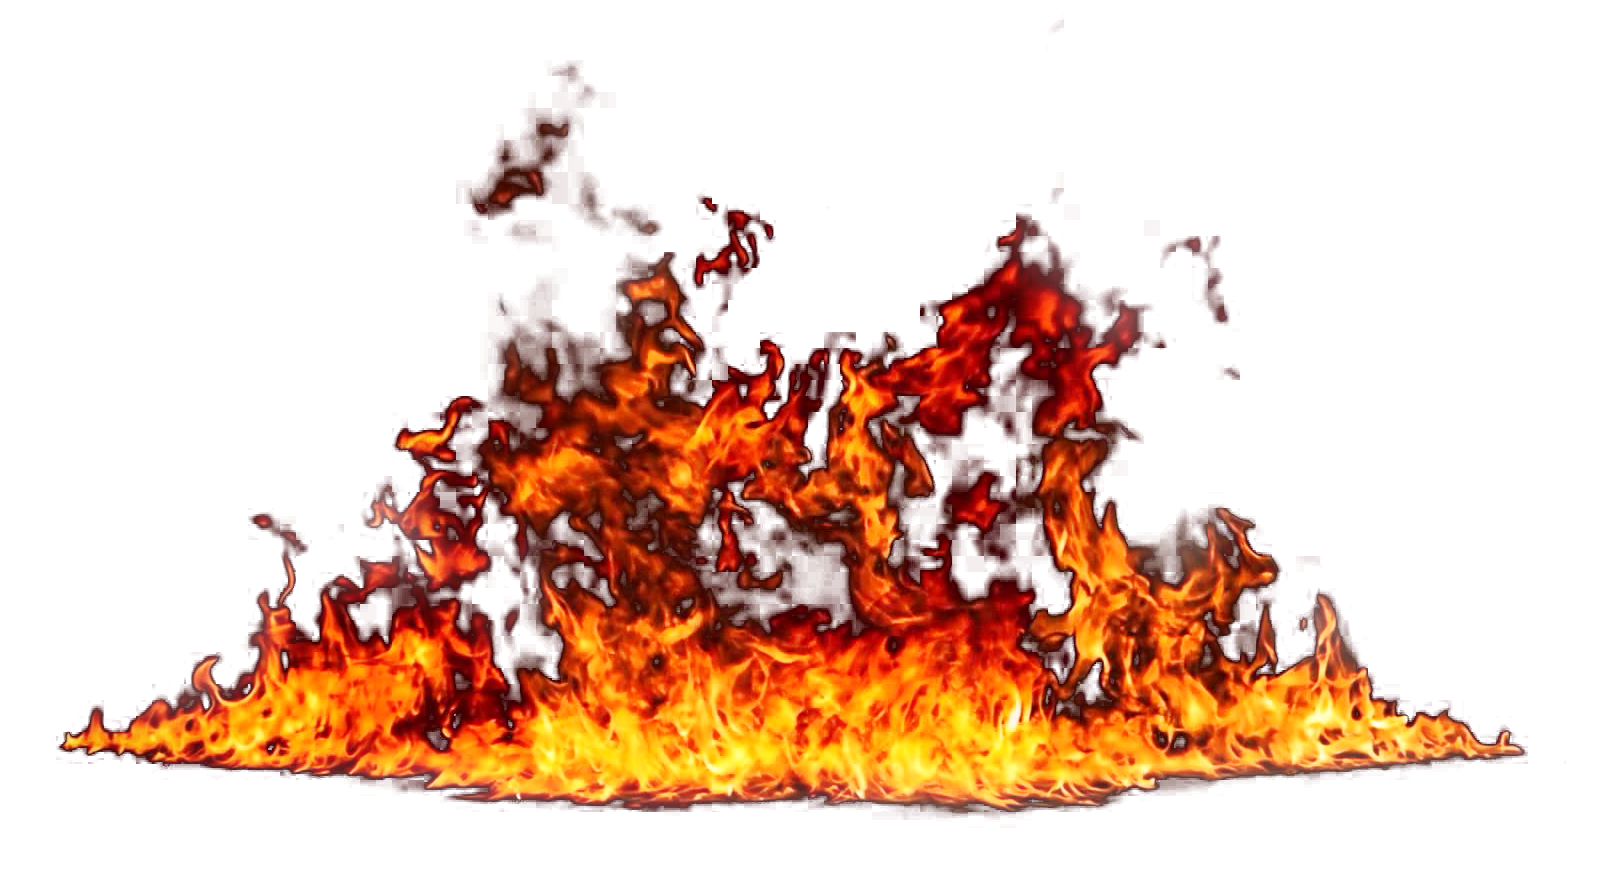 Fire Png Image By Akimantes 6796